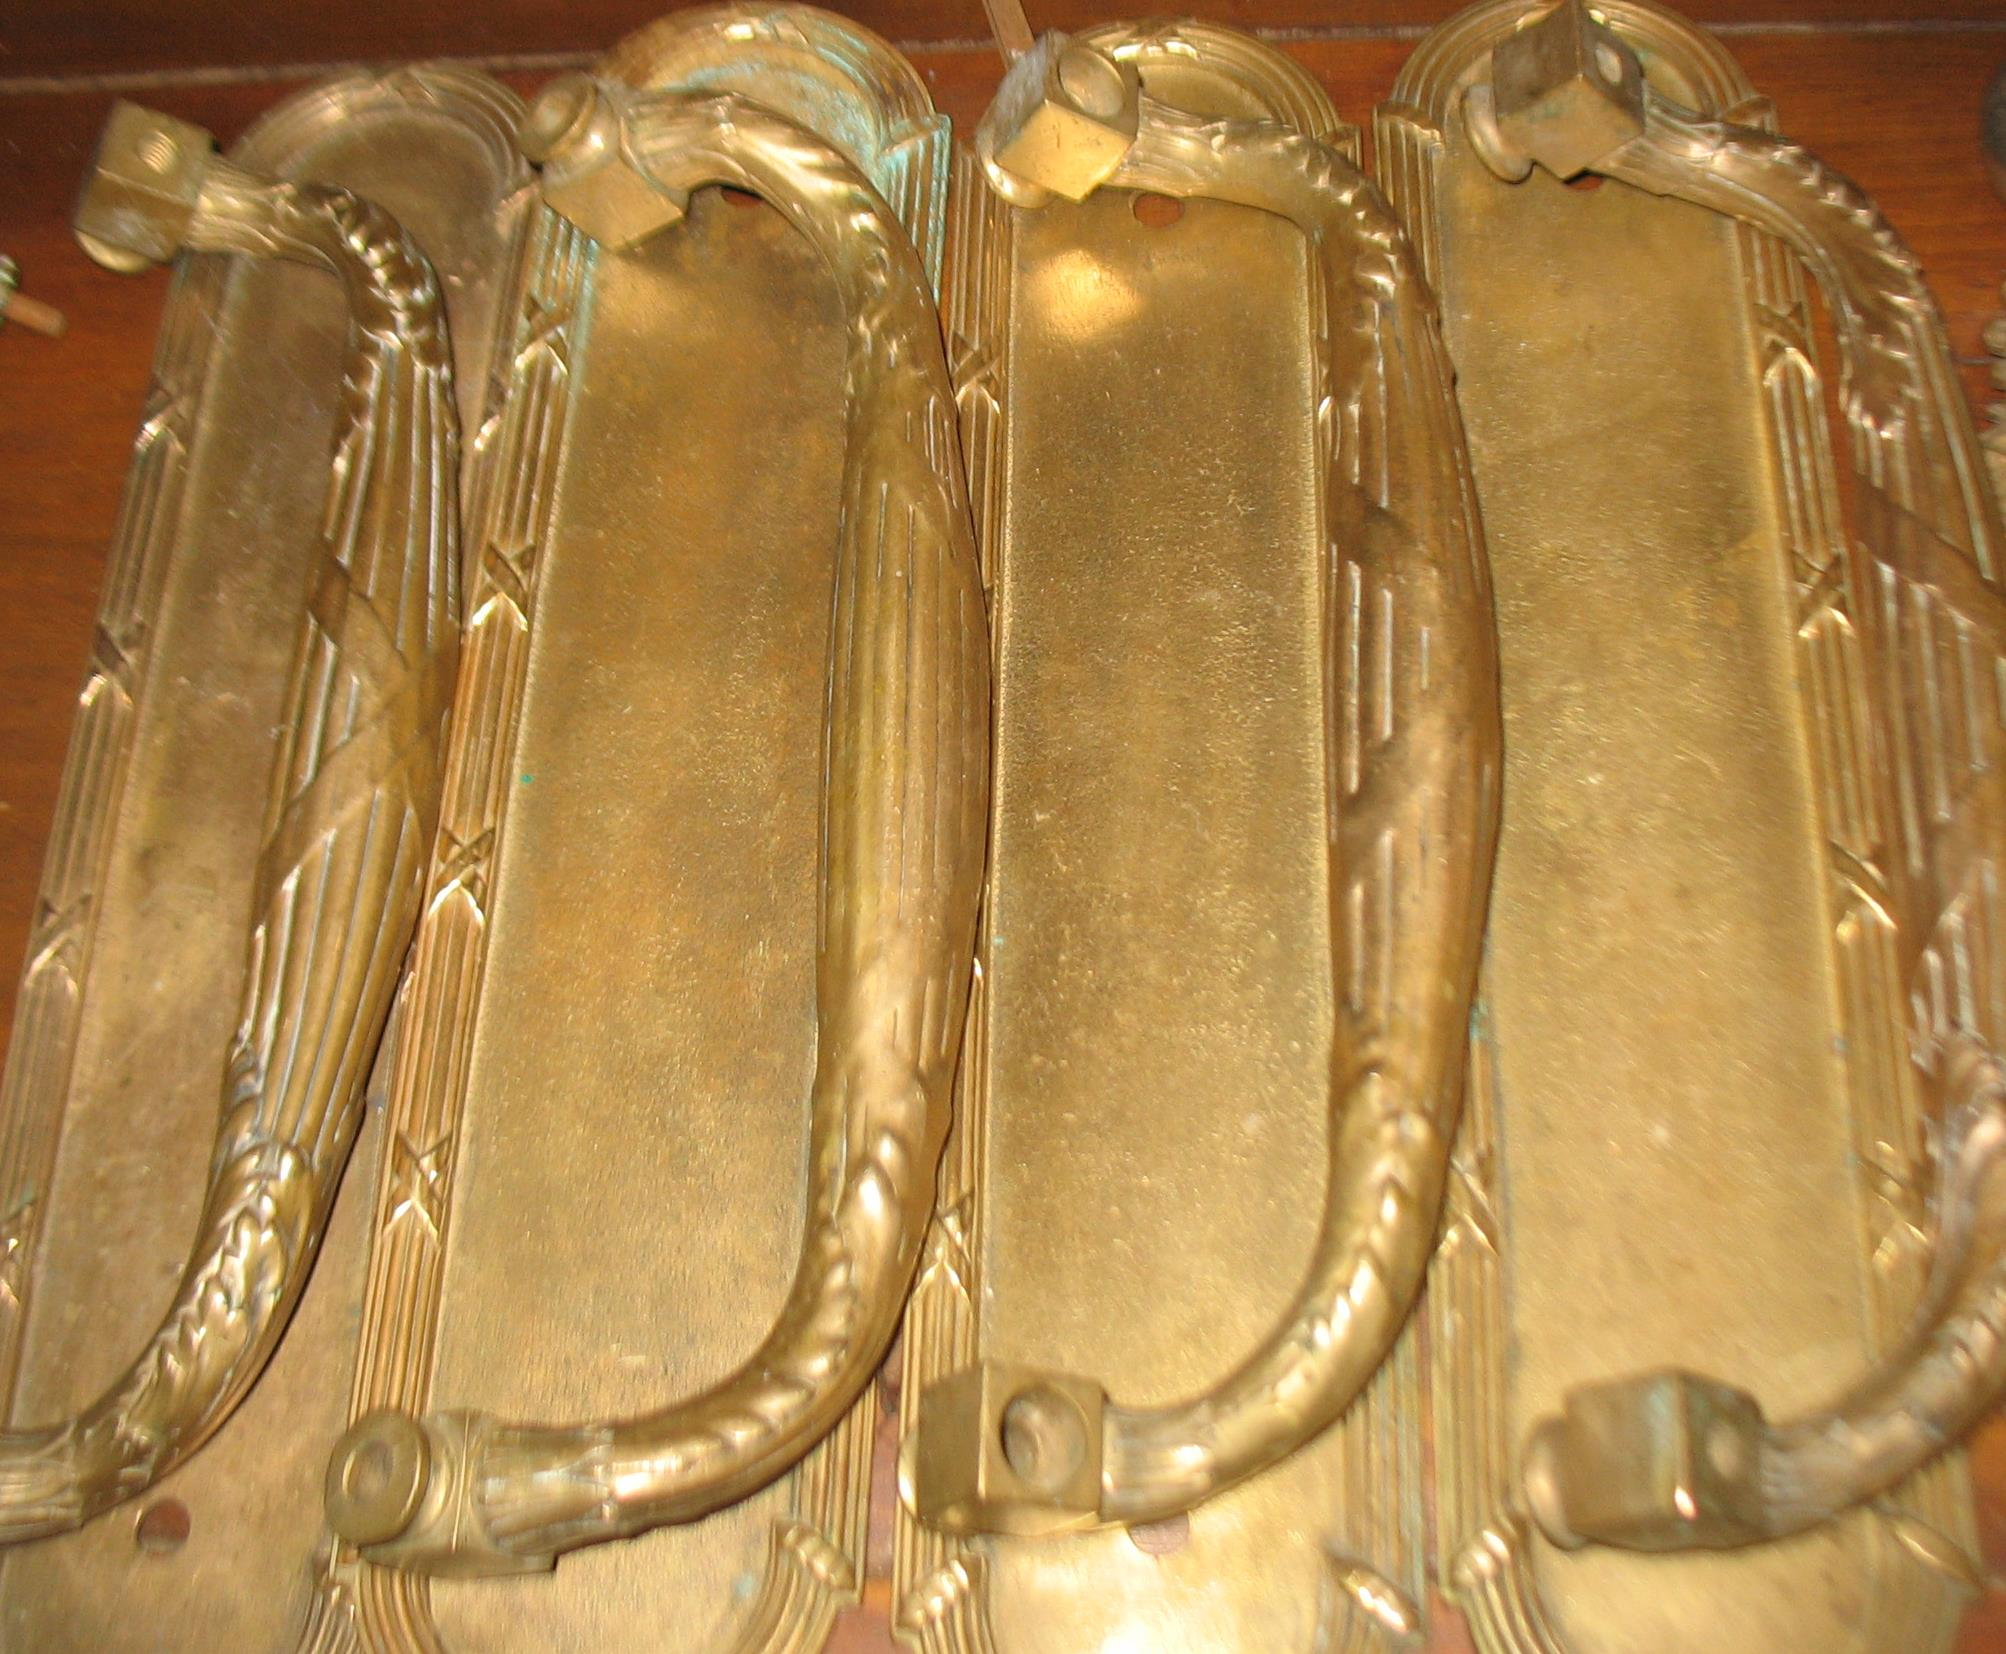 Set of 4 Heavy Brass Door Plates with Pulls.  These came from a house outside Cincinnati, Ohio.  They measure 15 inches long X 3 1/2 inches wide. ca: 1880's/1890's These would be wonderful for double entrance doors front and back.